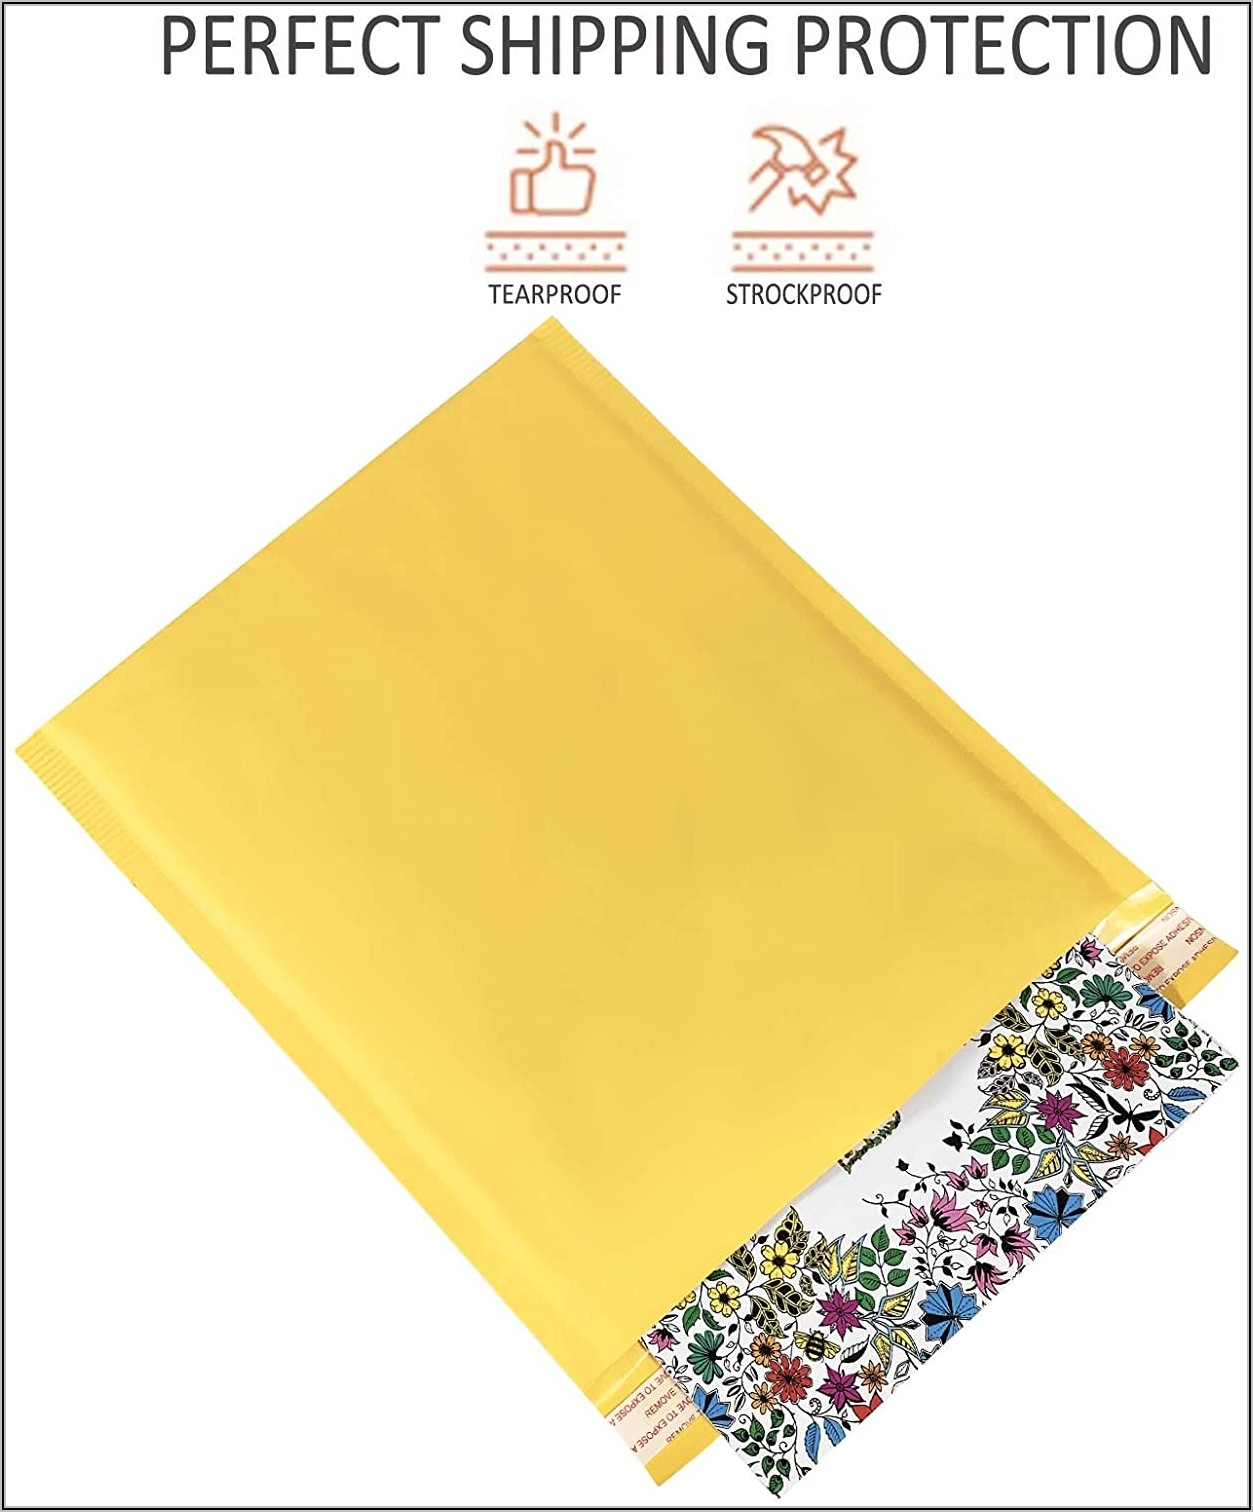 Postage Needed For 9x11 Envelope